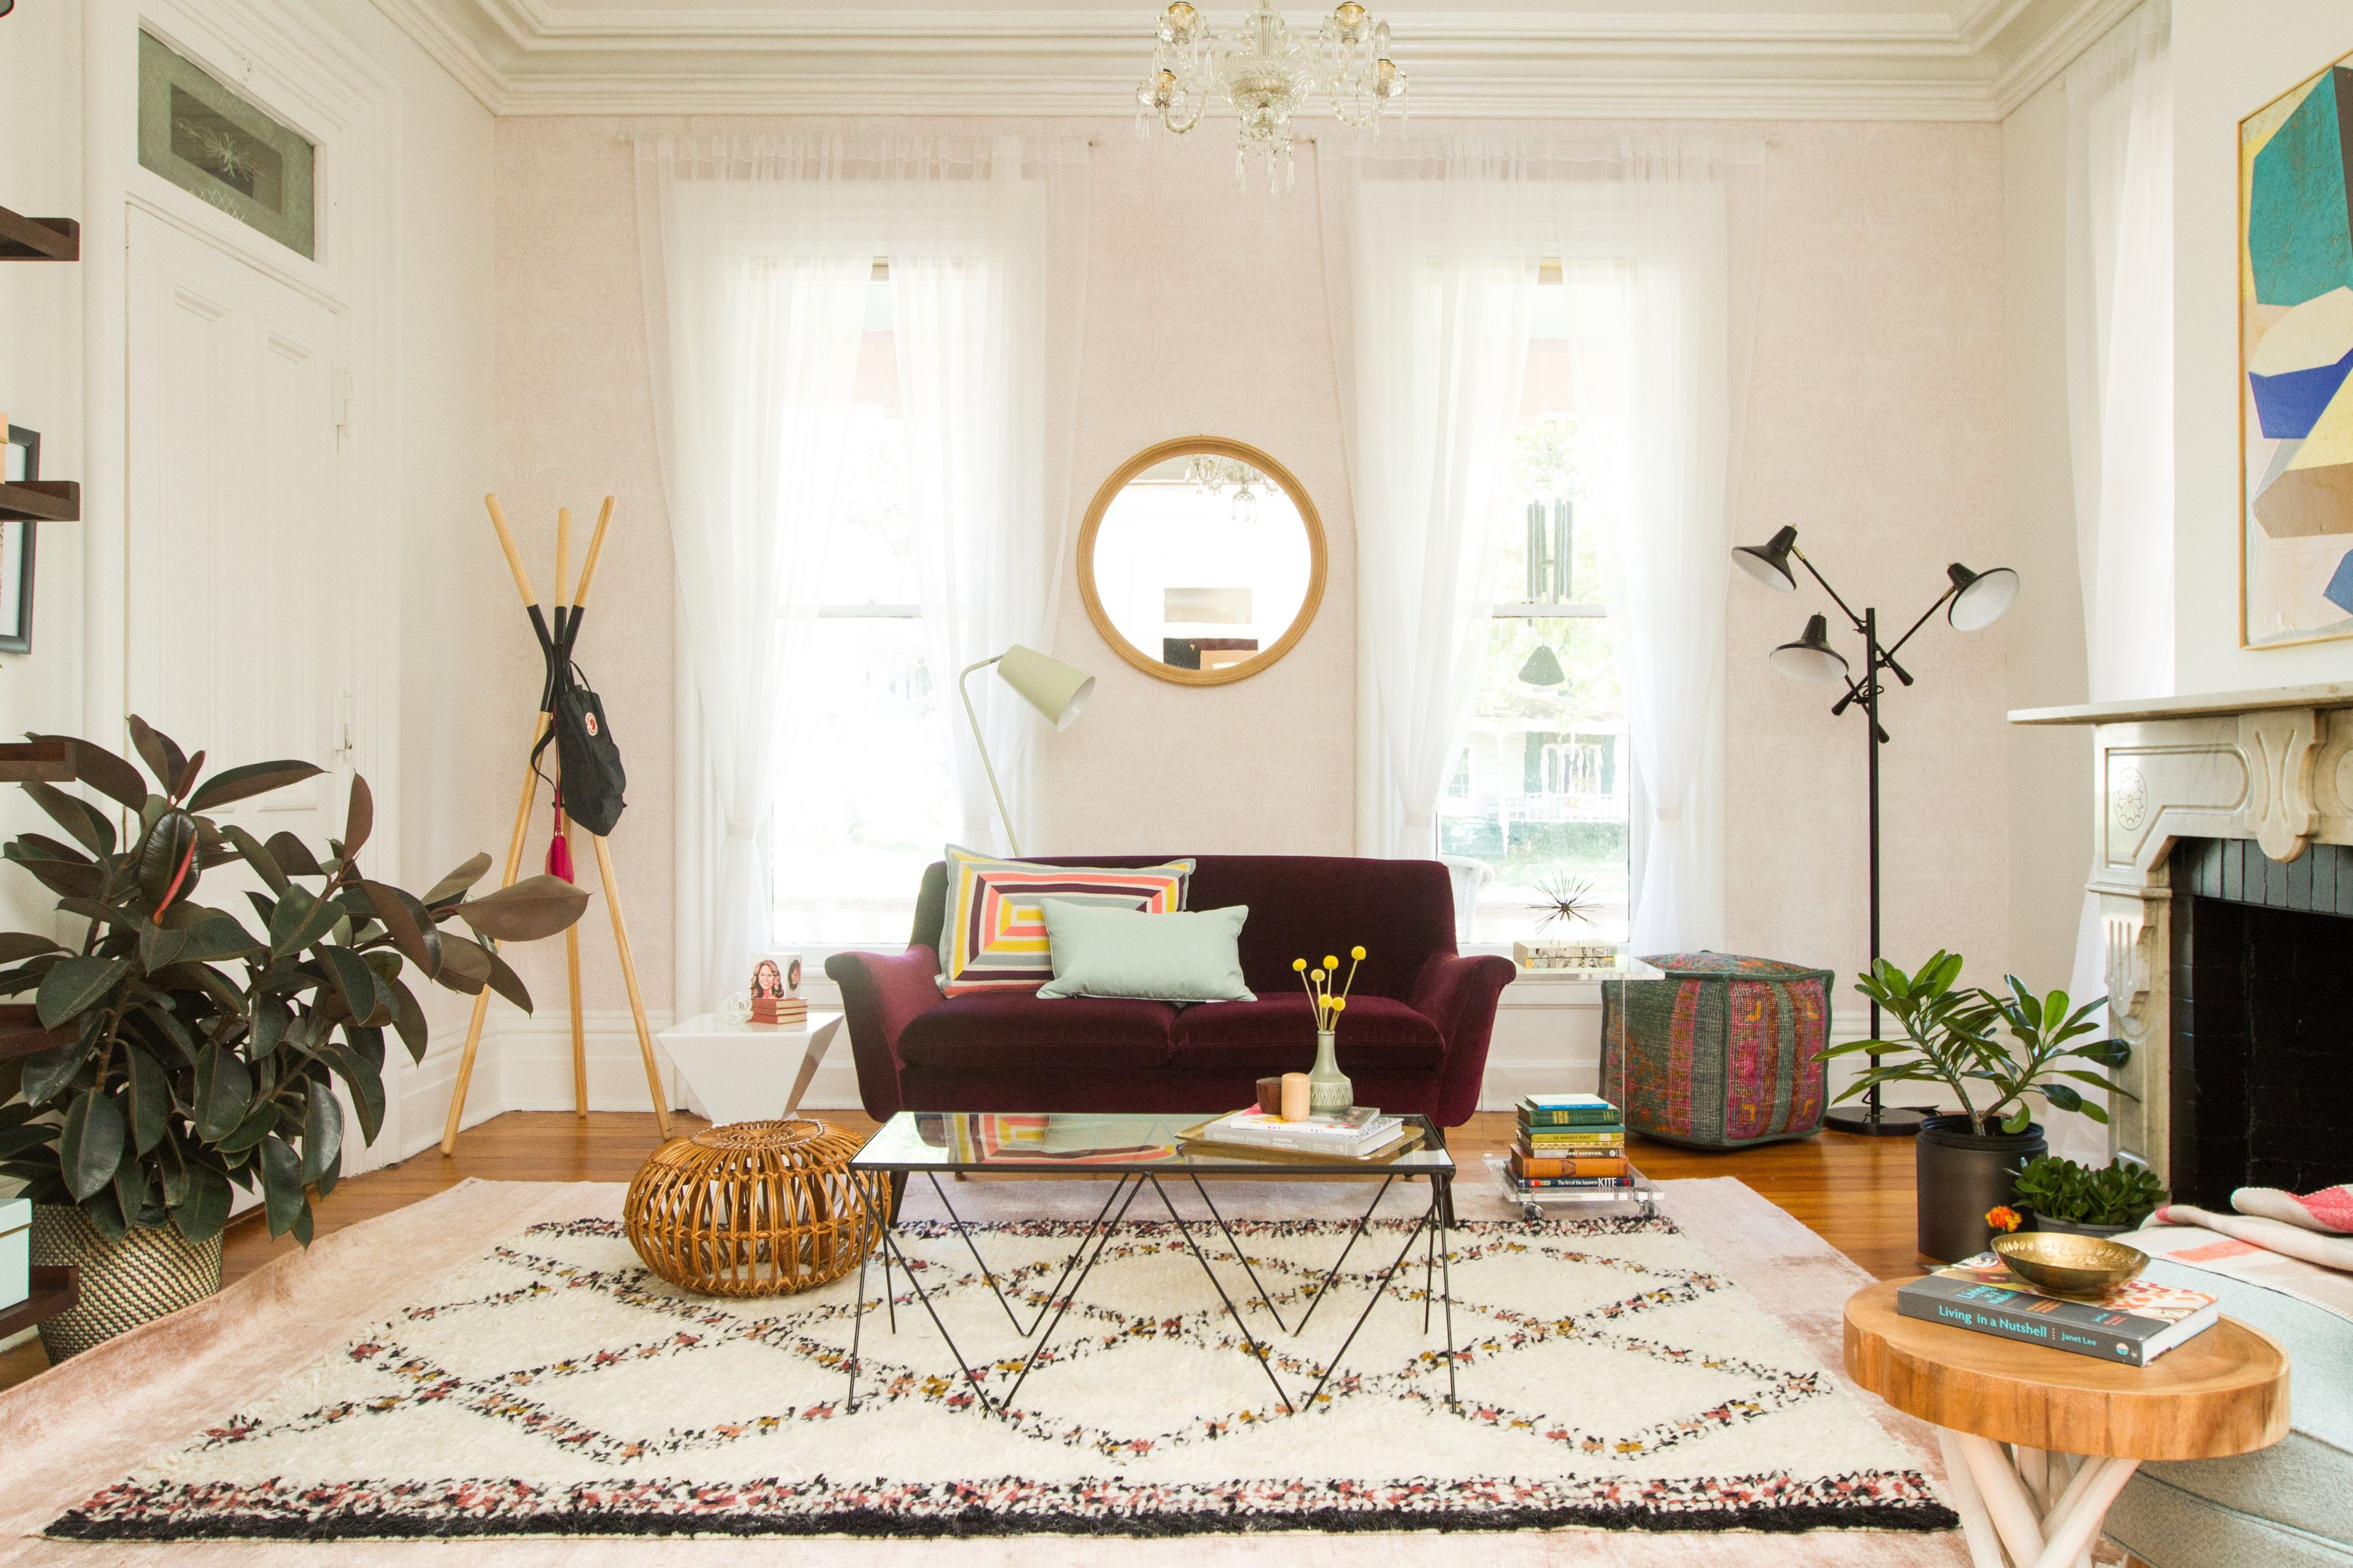 Best Small Living Room Design Ideas | Apartment Therapy ...